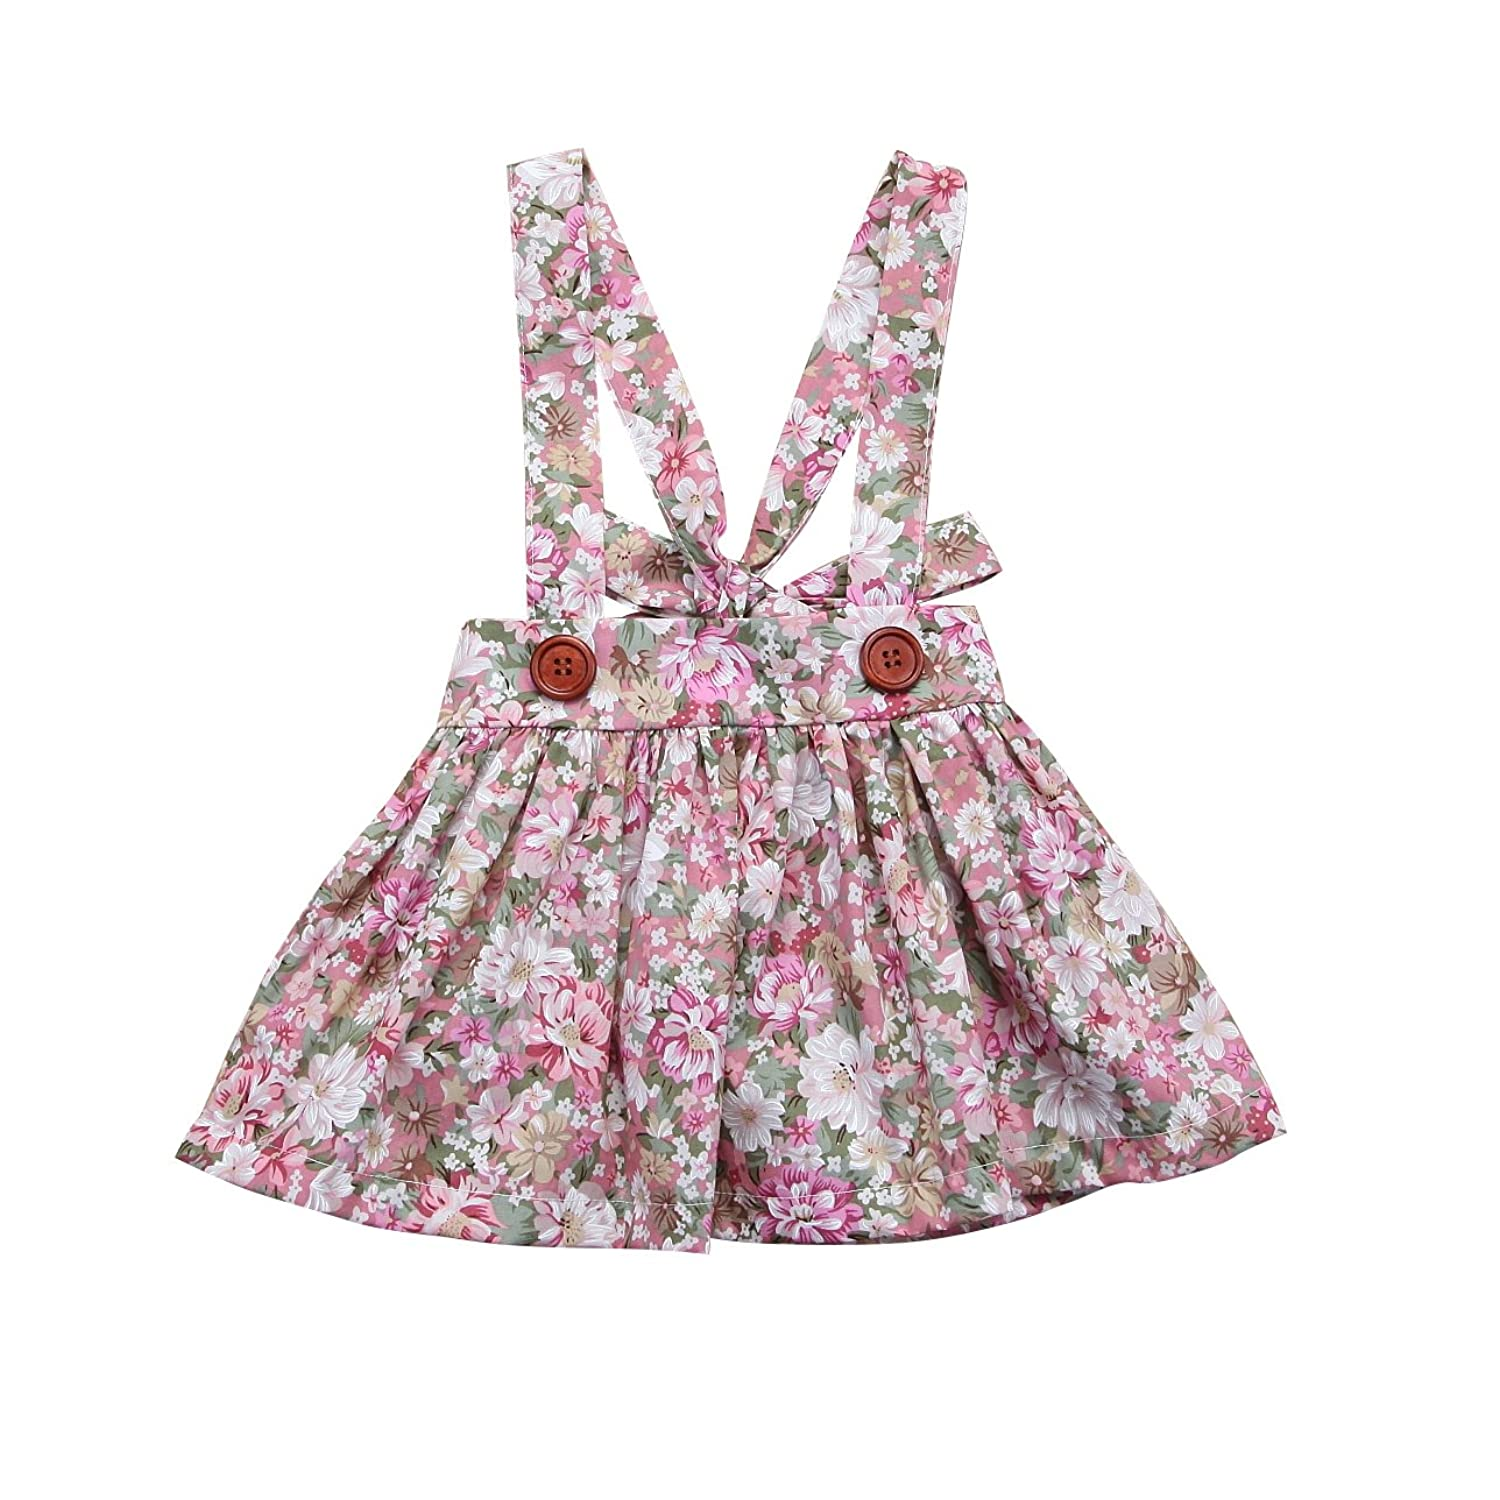 d1615e920 Beautiful flowers pattern, Adjustable Suspender featuring buttons and  bowtie, Super lovely adorable infant toddler dress. You can dress your little  girls in ...